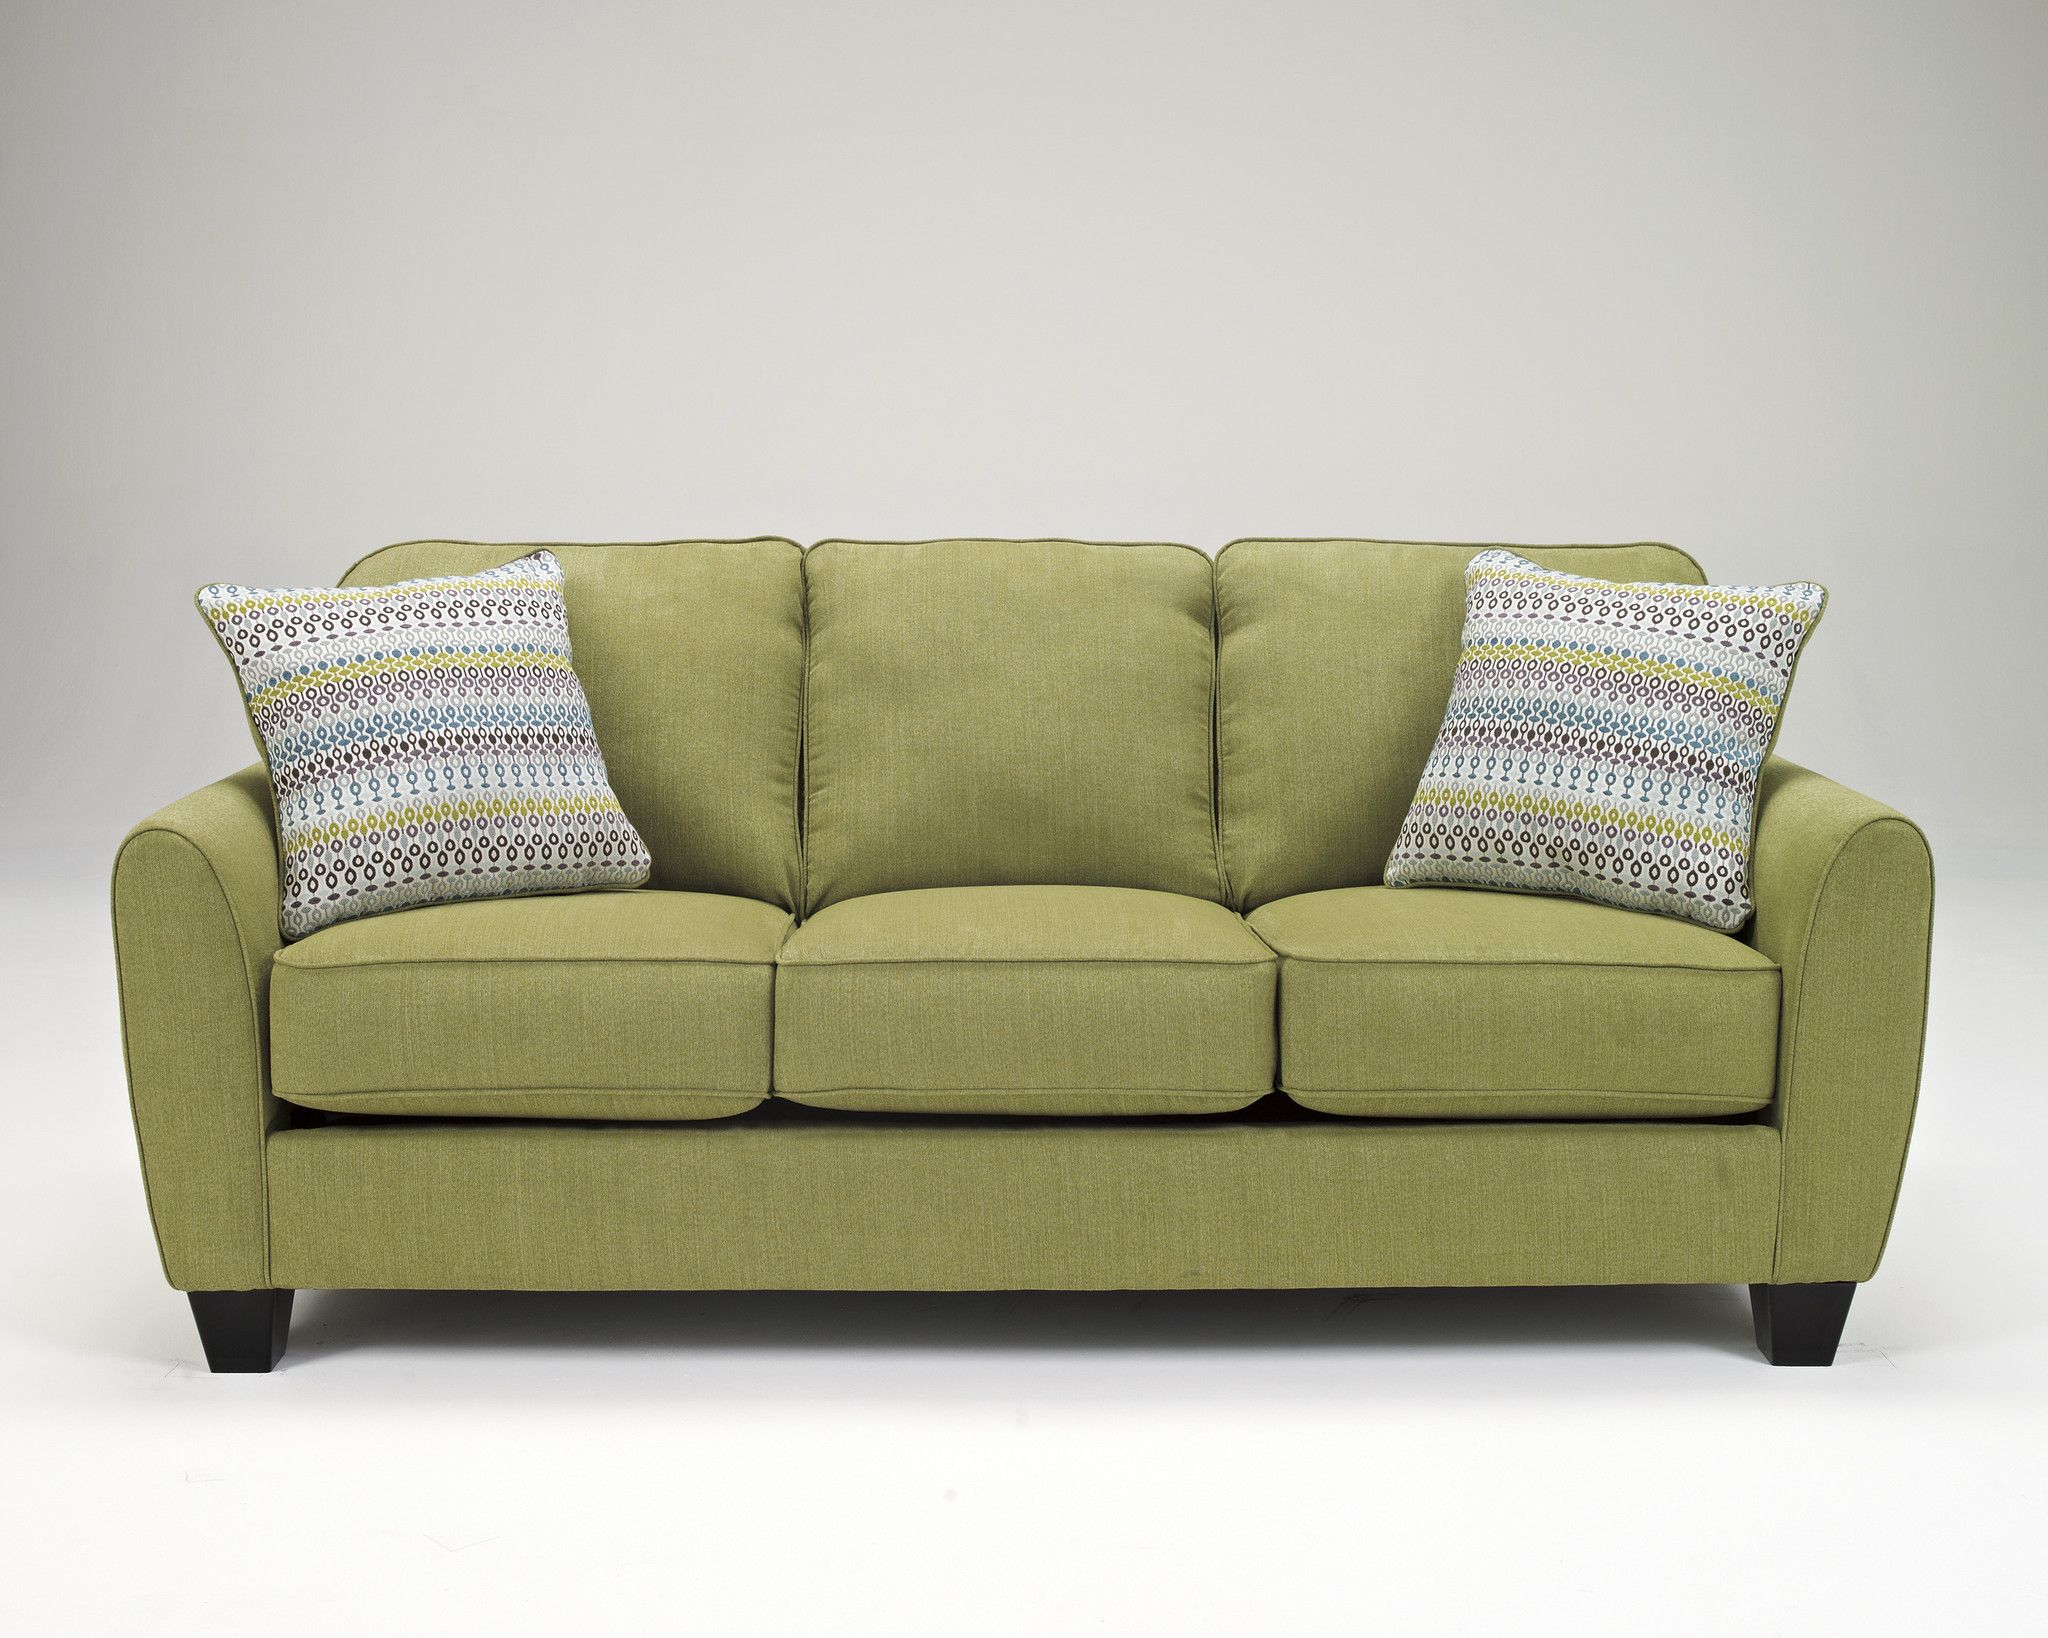 The Ean Sofa in Green by Ashley Furniture See it Now at